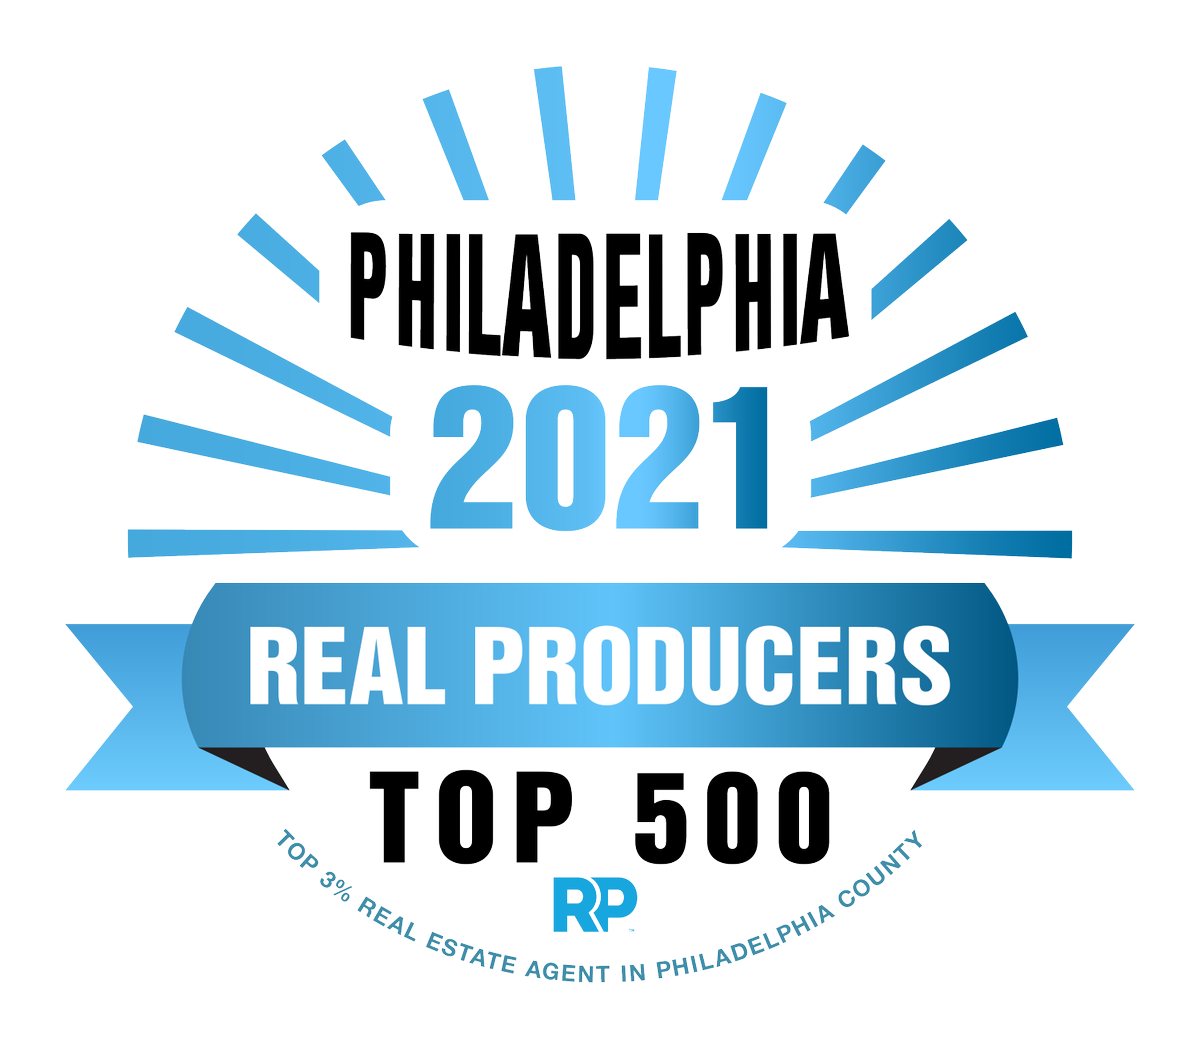 #PhiladelphiaREALProducers magazine celebrating their best!  Feels good to be recognized as one of the top #Realtors in #Philadelphia.    #CBProud #Coldwellbanker #Cbpoldcity #PhillyRealtor #philly  #PhillyPhilly #Realproducers